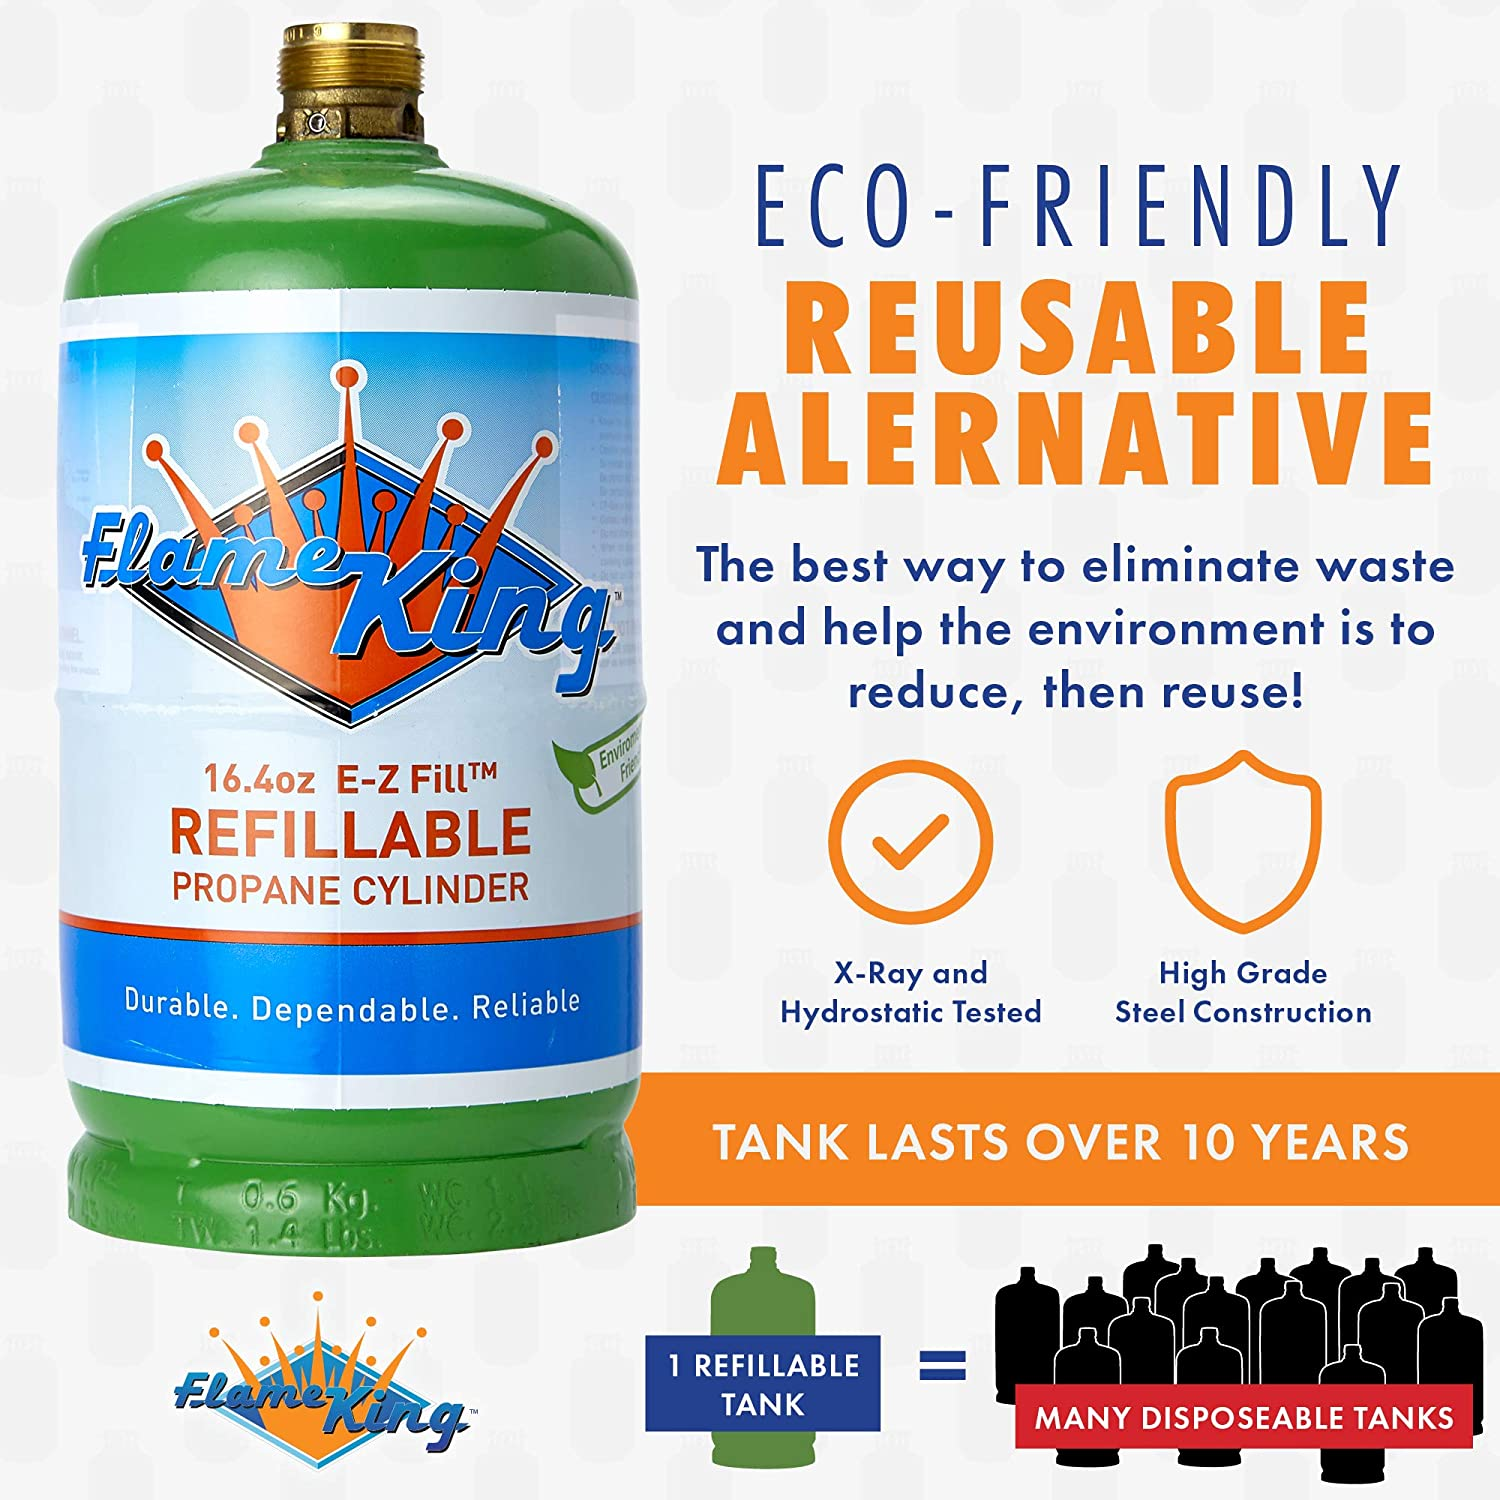 Propane Cylinder 1 lb Refillable And Transportable Eco-Friendly With Carry Cap